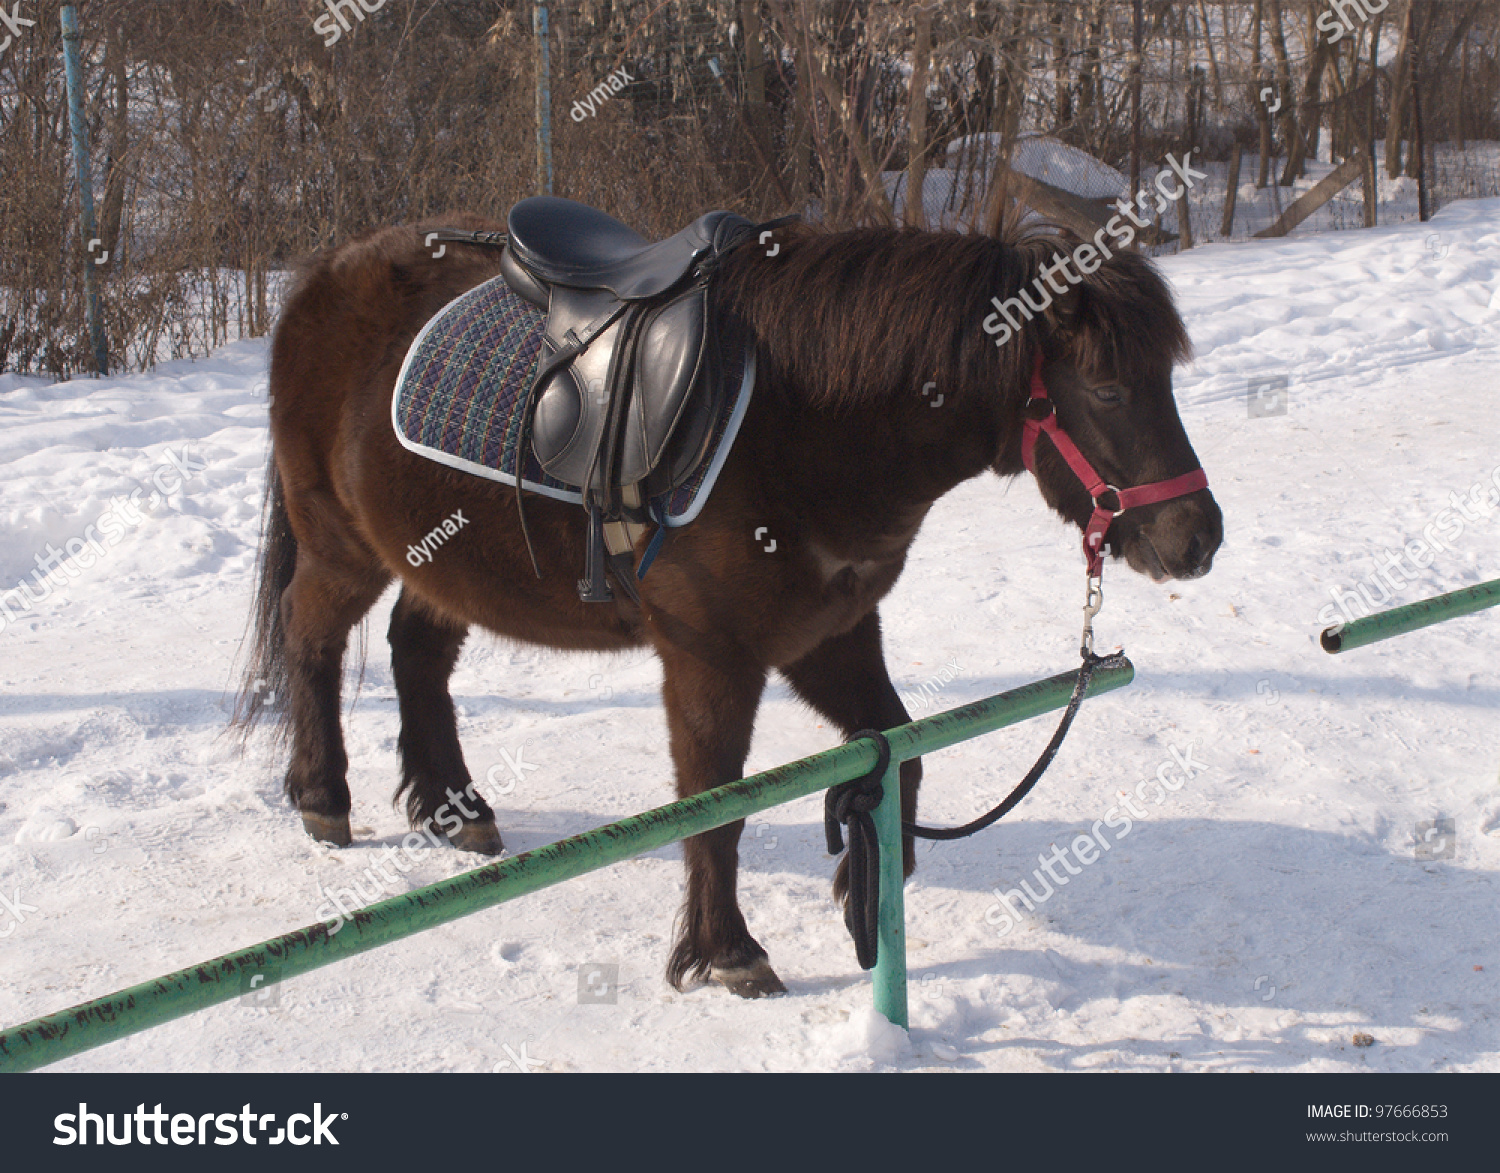 hight resolution of brown small pony in harness stands on snow outdoor